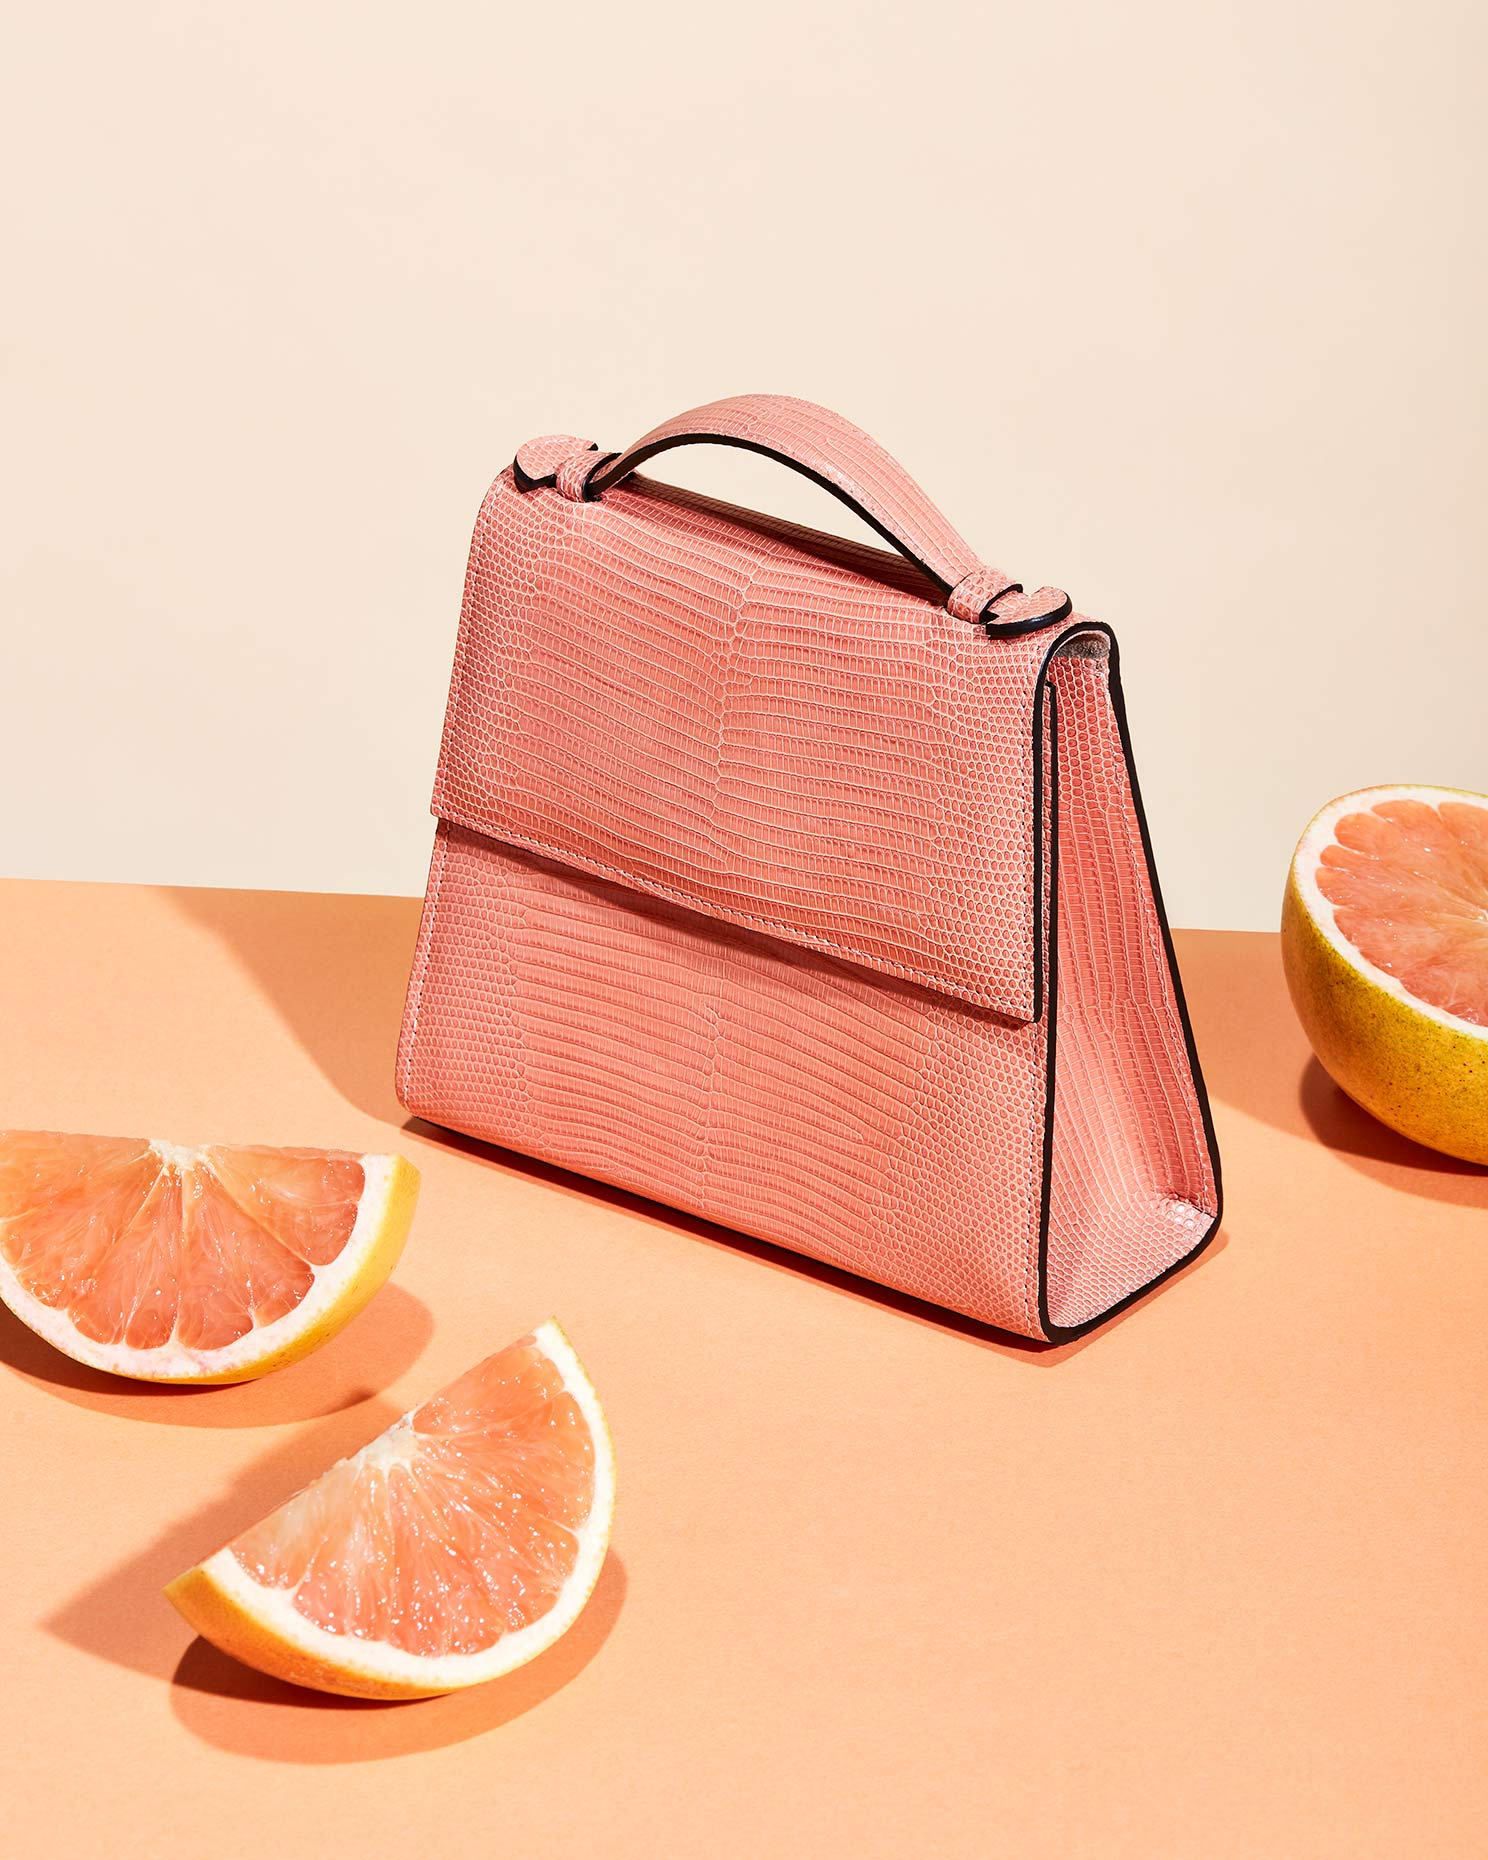 fashion accessory photograph featuring a pink handbag and grapefruit sections.